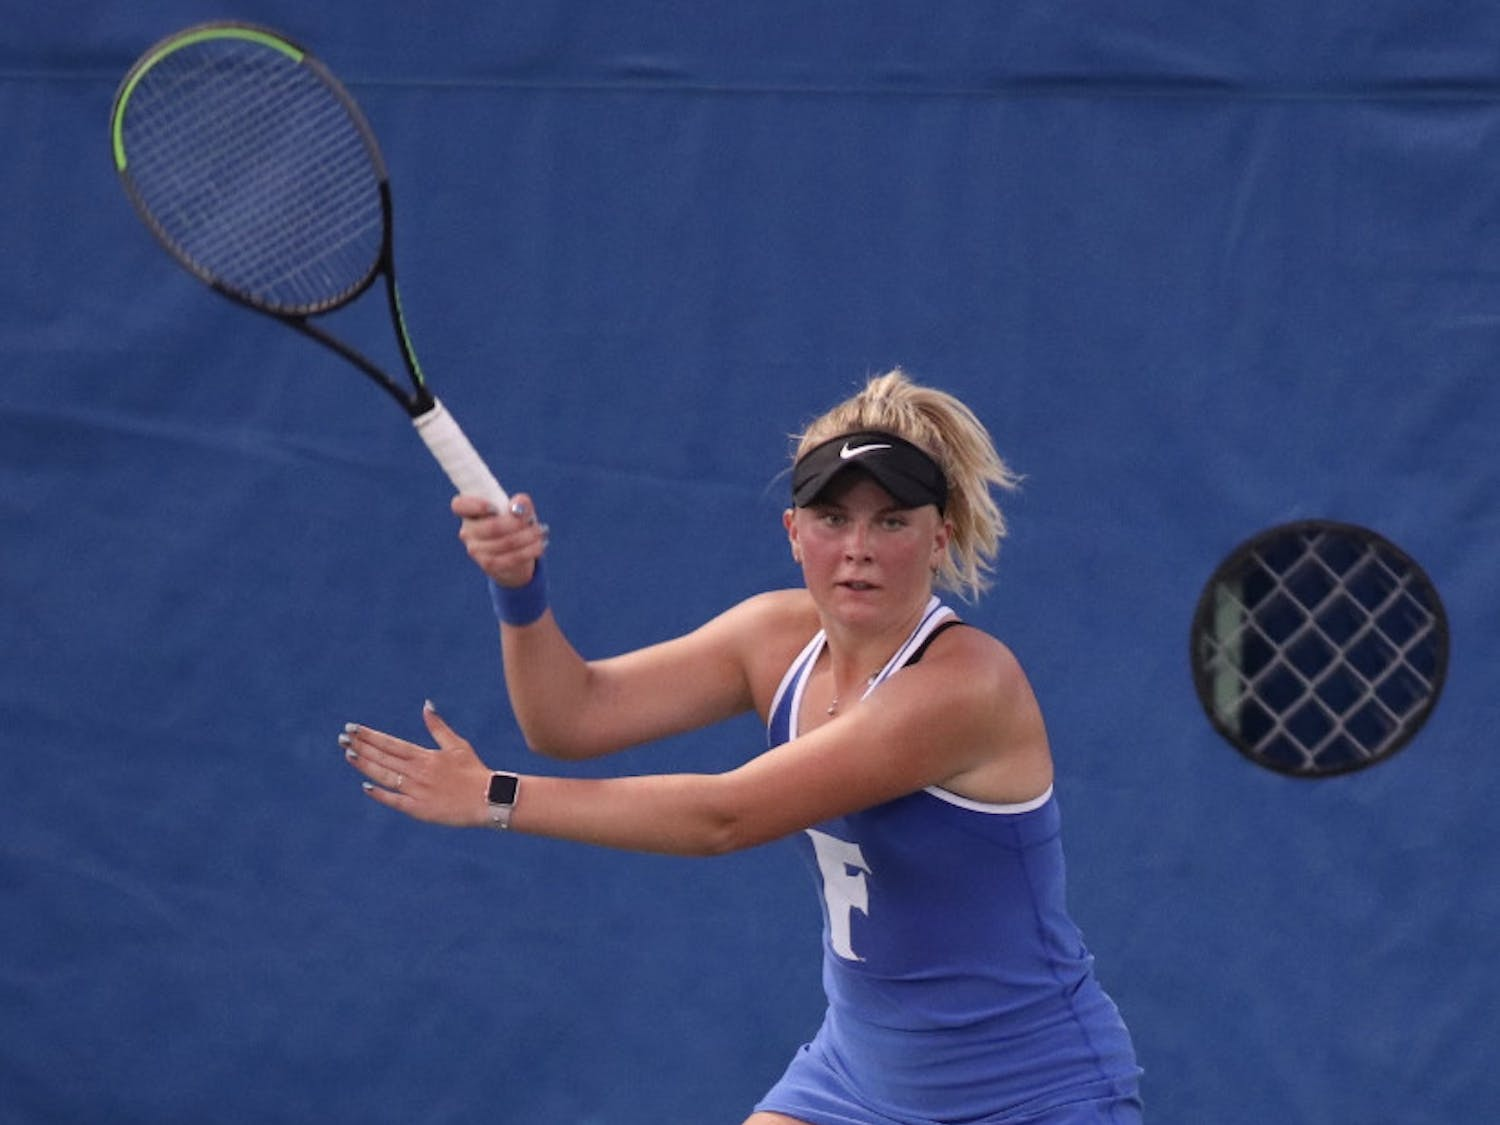 Freshman Sara Dahlstrom prepares for a forehand return against LSU Feb. 26